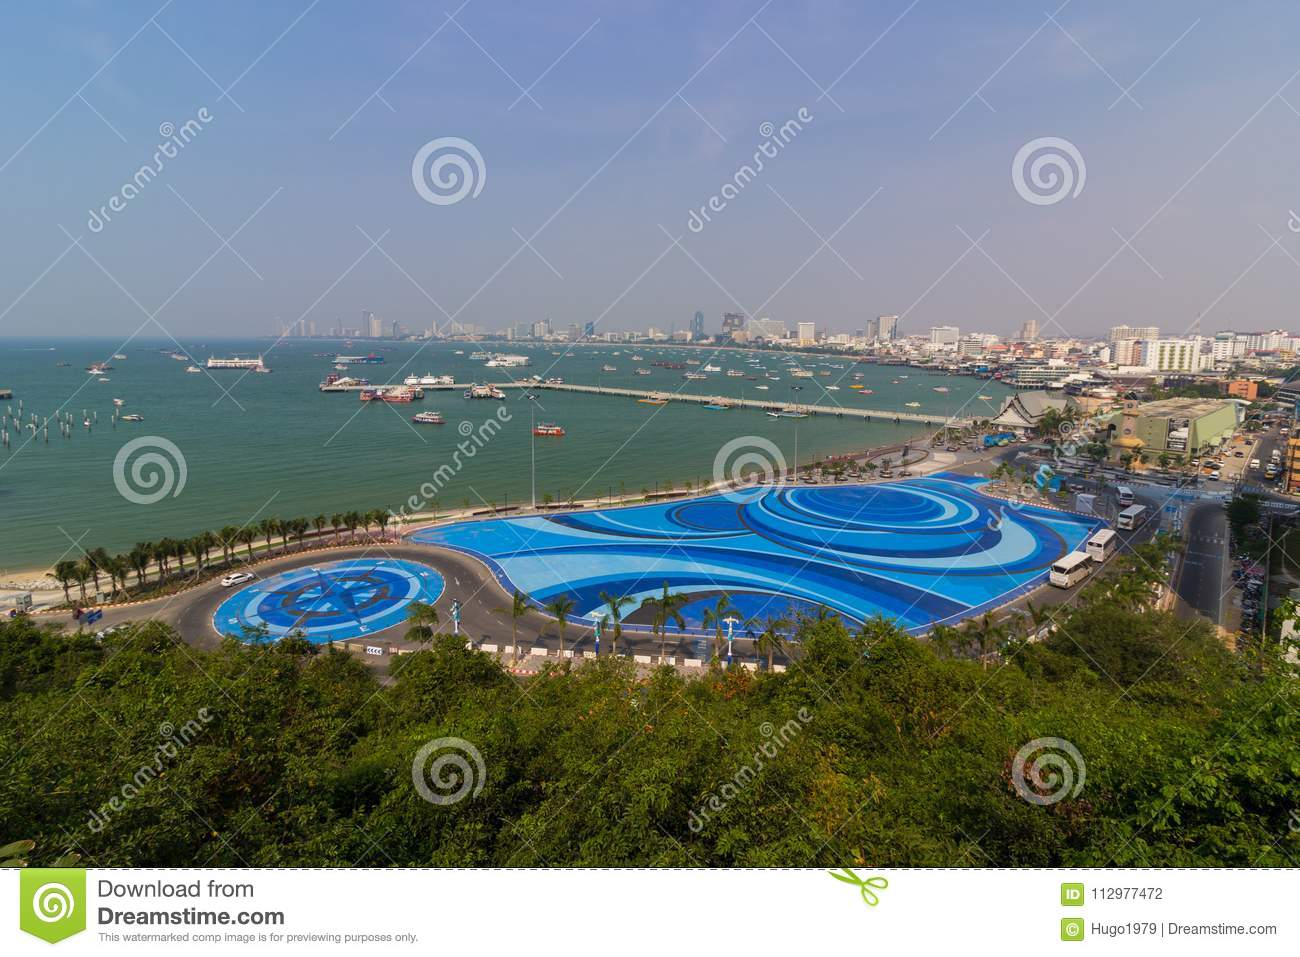 Colourful park on Pattaya bay in Thailand